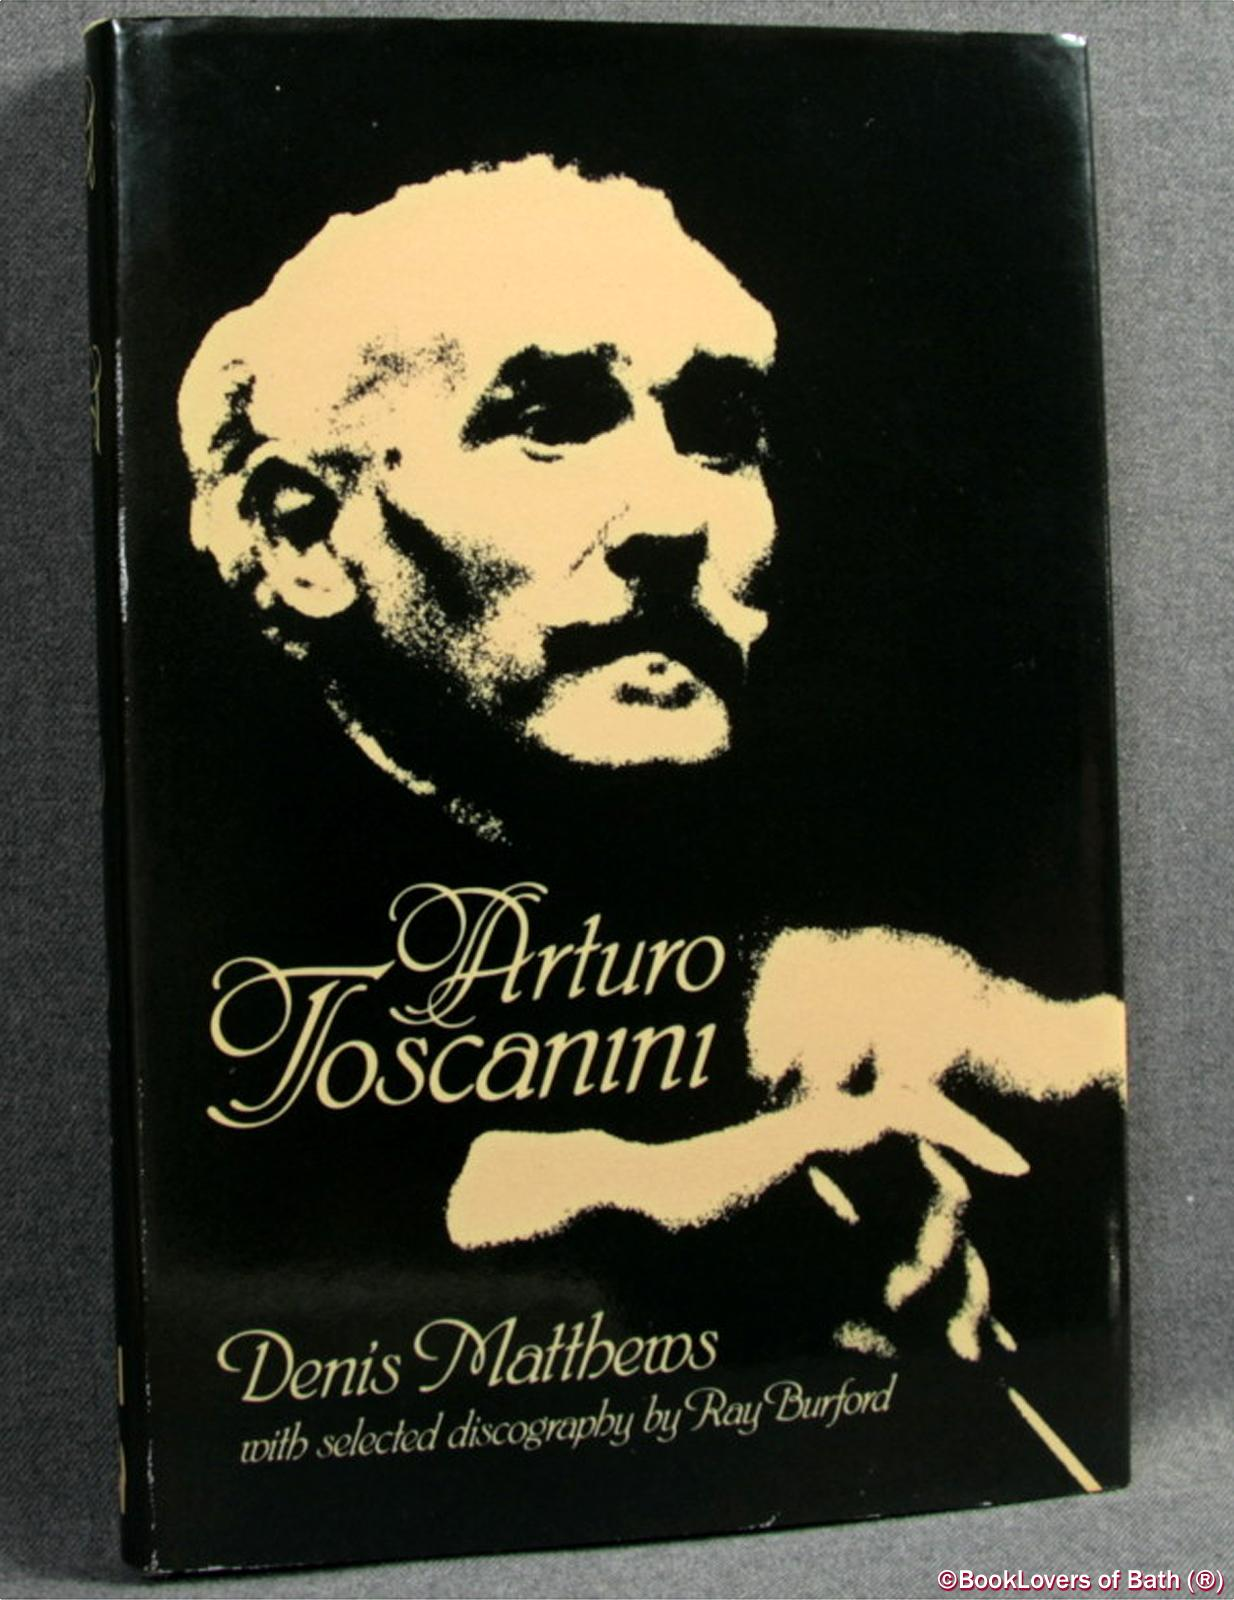 Arturo Toscanini  - Denis Matthews with selected discography by Ray Burford